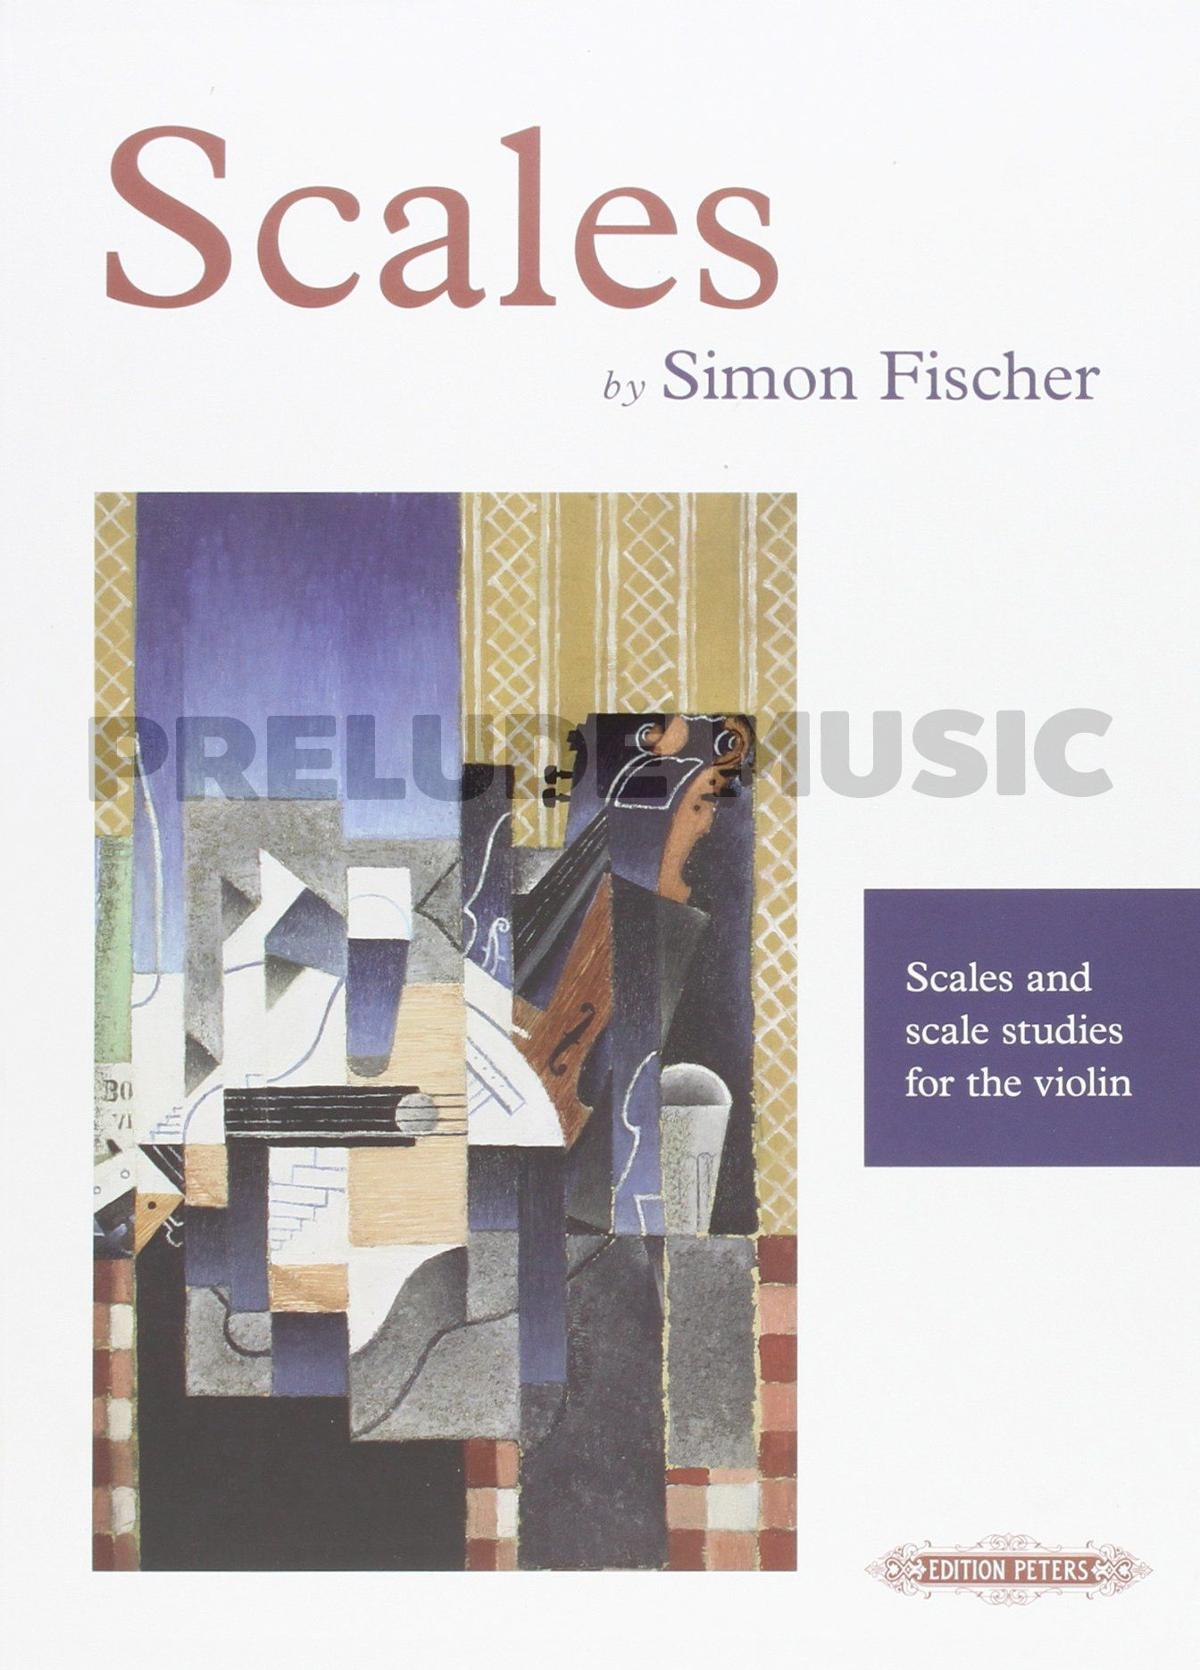 Scales by Simon Fischer